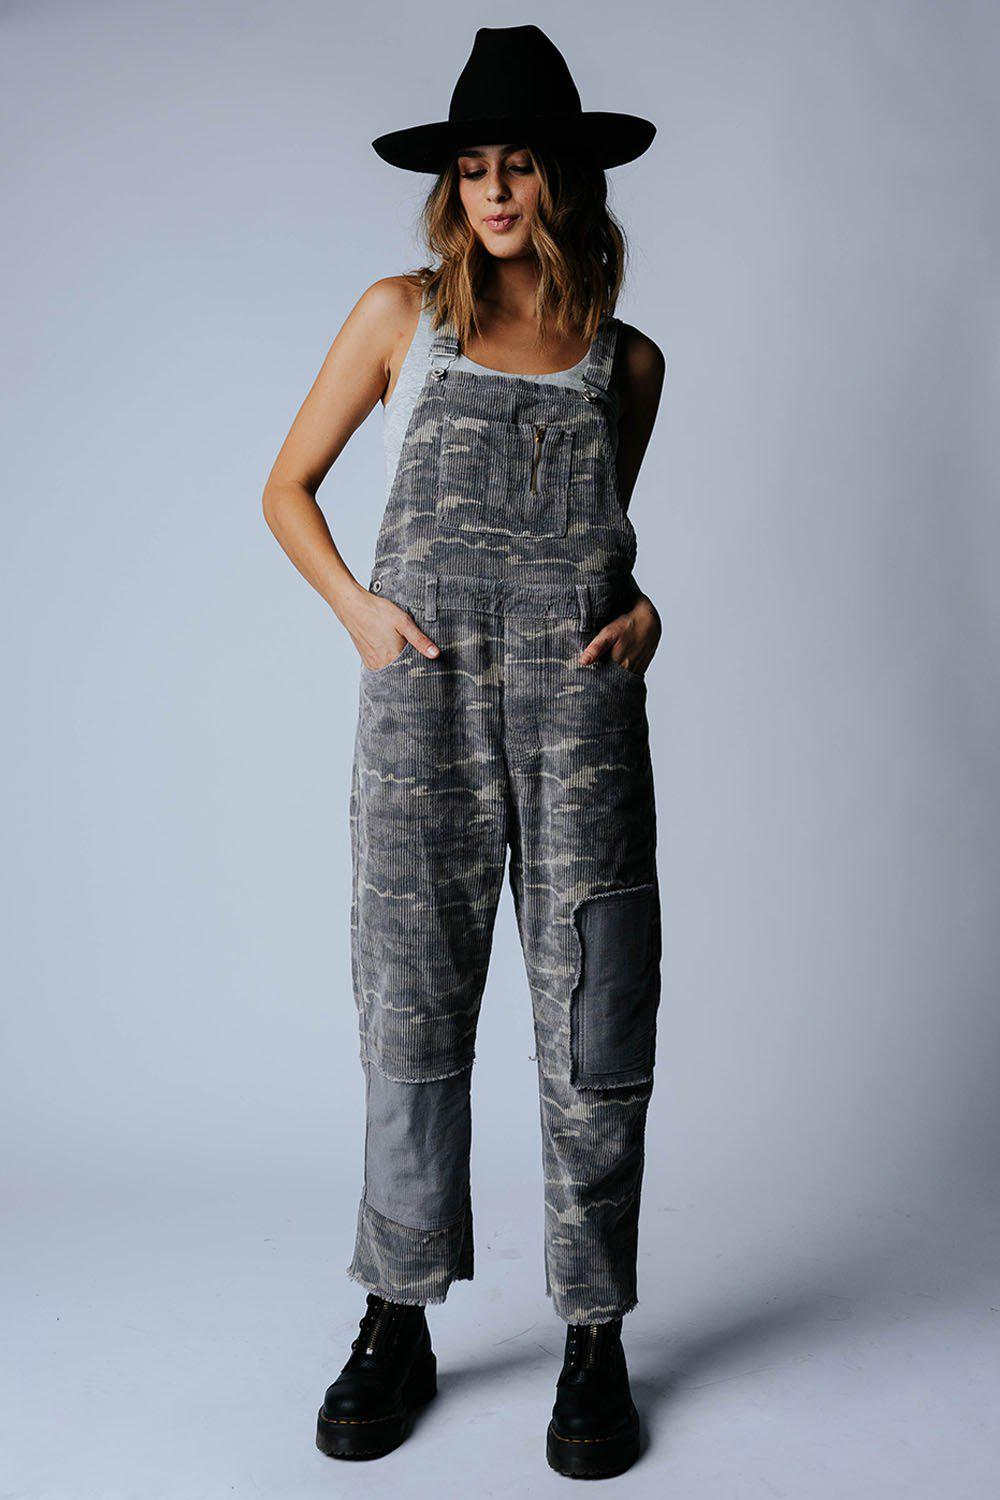 best_seller, Can't See Me Overalls in Grey Combo, Bottom, women's clothing, dresses, skirts, coats, jackets, shoes, boots, tops, tee shirts, jeans, free people, levi's, rollas, jumpsuits, bottoms, tops, sweaters, pullovers, pants, shorts, sweats,.